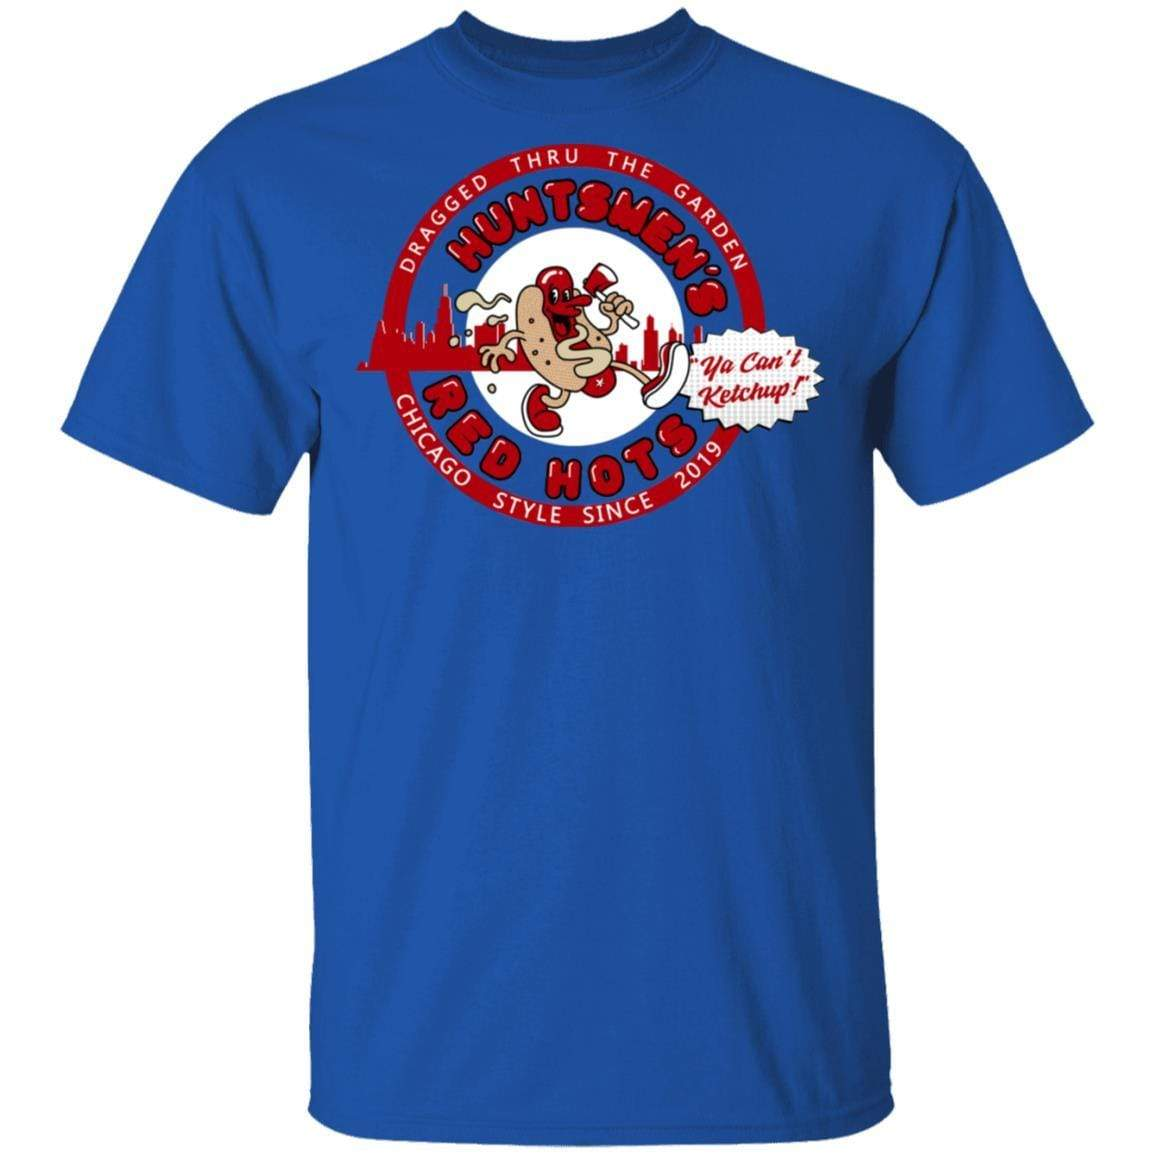 Huntsmen's Red Hots Ya Can't Ketchup Chicago Style 2019 T-Shirts, Hoodies 1049-9971-88445034-48286 - Tee Ript